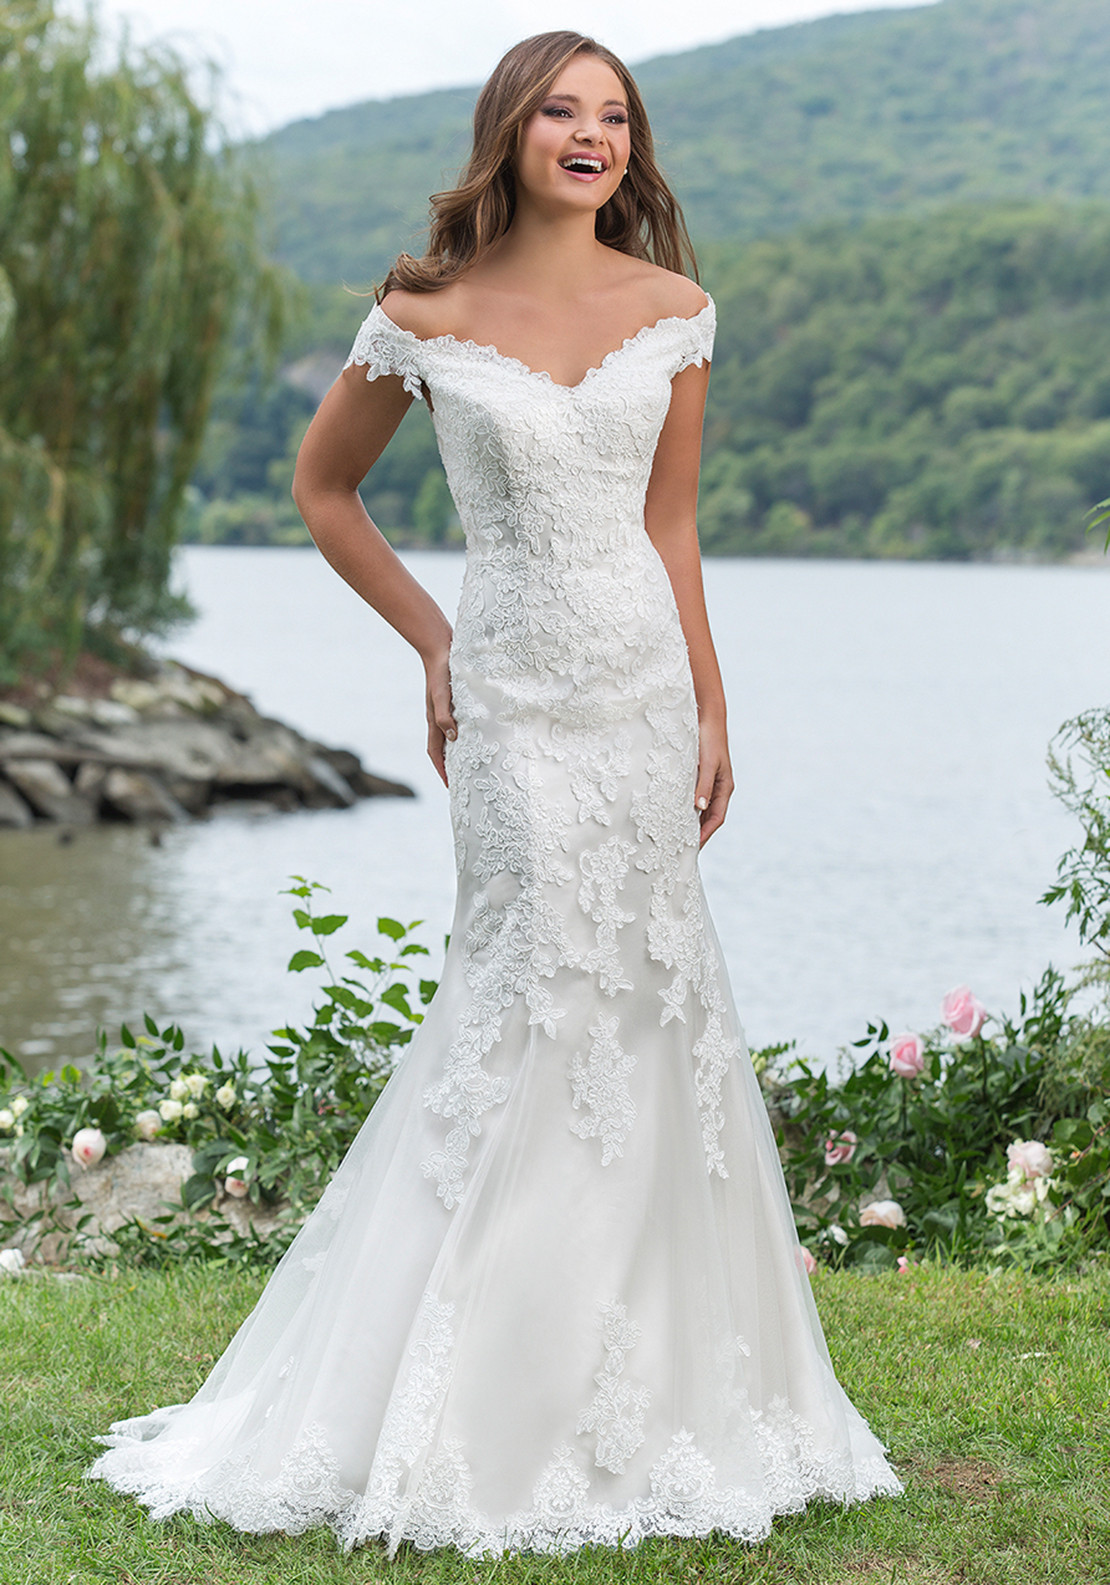 f7a3d901cf Sweetheart 6155 Wedding Dress. Be the first to review this product